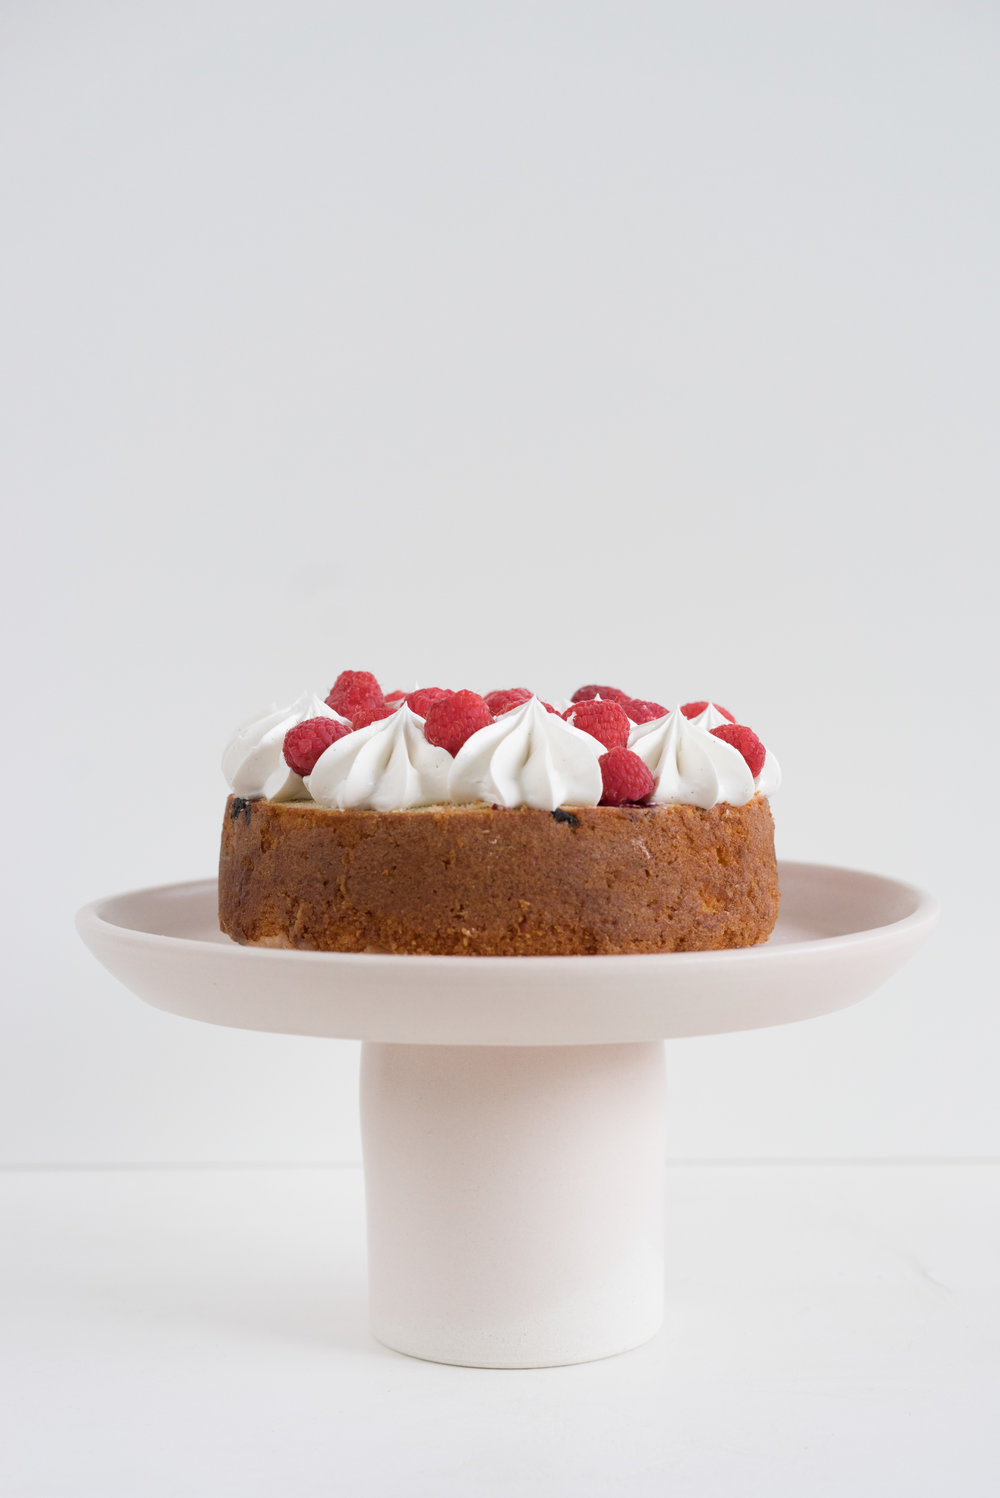 Raspberry and Almond cake - a perfectly dense almond meal cake, lightly scented with lemon, and with a layer of fresh raspberries baked into each layer. Layered with vanilla swiss meringue buttercream and more fresh raspberries. perfect for Mother's day or any other special occasion.